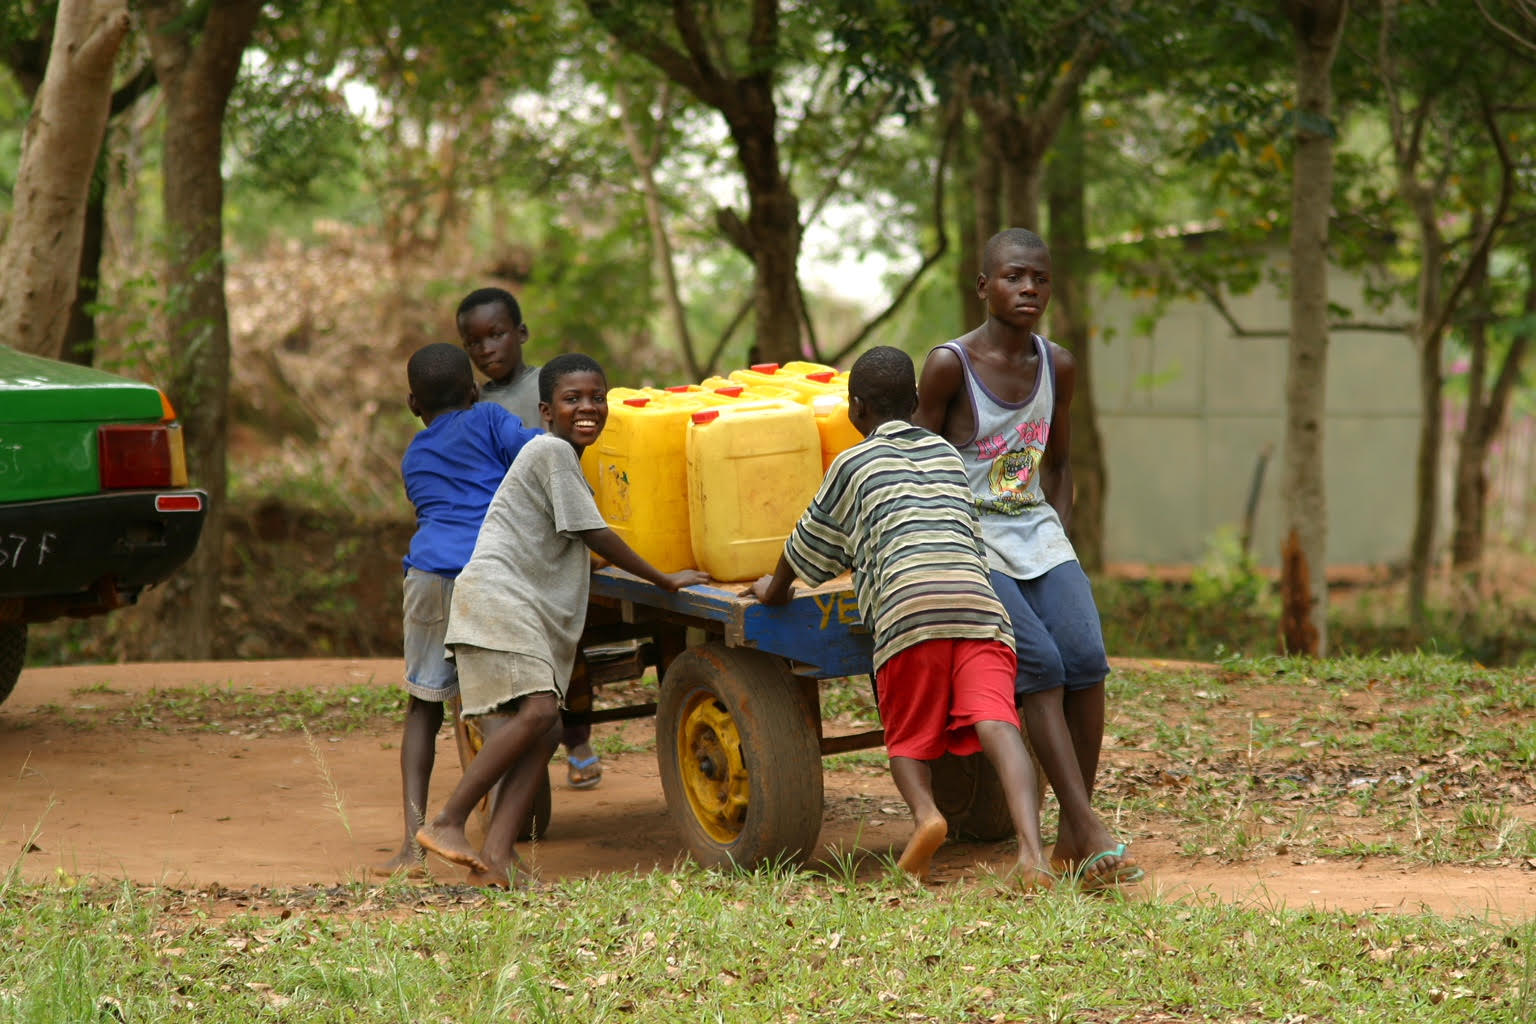 Before Ghana's village of Katapor had access to fresh well water, boys hauled polluted water from a nearby river. In many parts of Africa, women and children walk long distances to bring water to their homes.